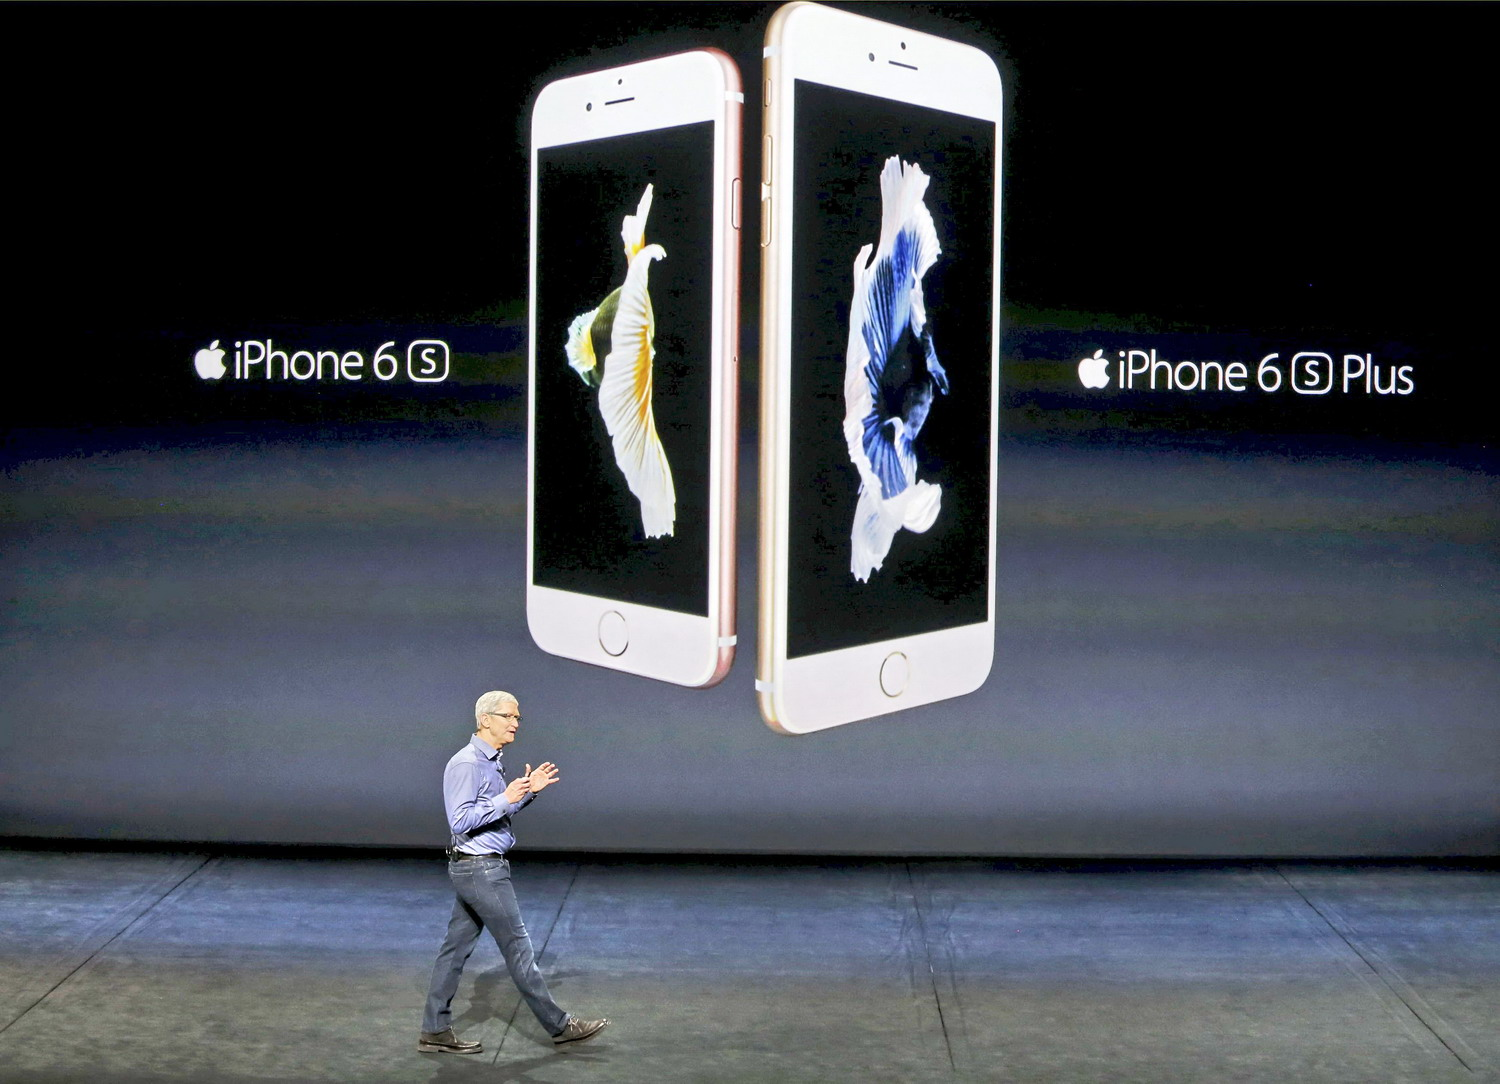 Apple phone, tablet and TV fail to impress investors